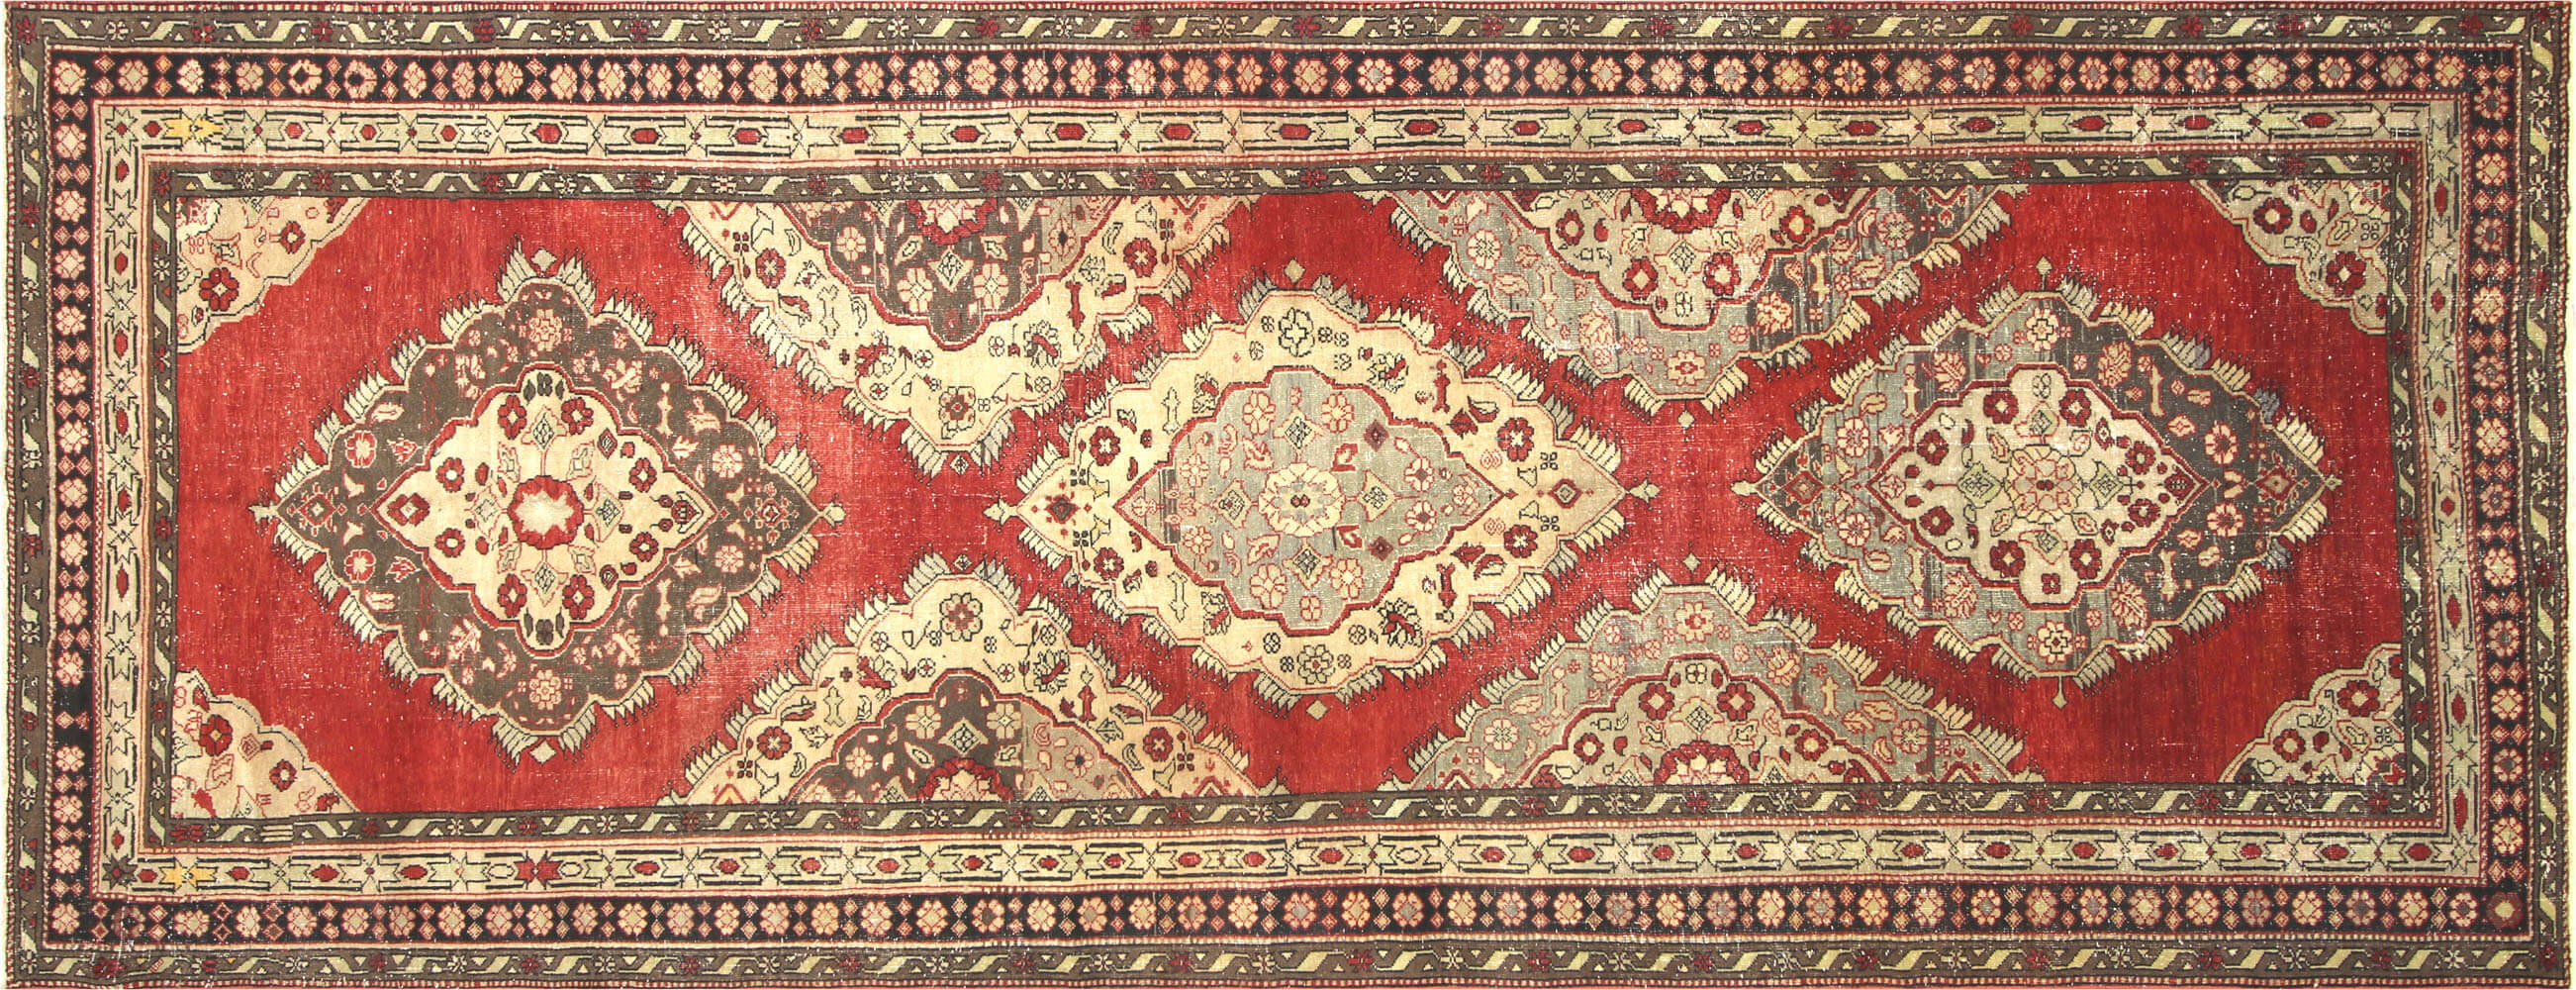 "Vintage Turkish Oushak Carpet - 5'7"" x 14'5"""